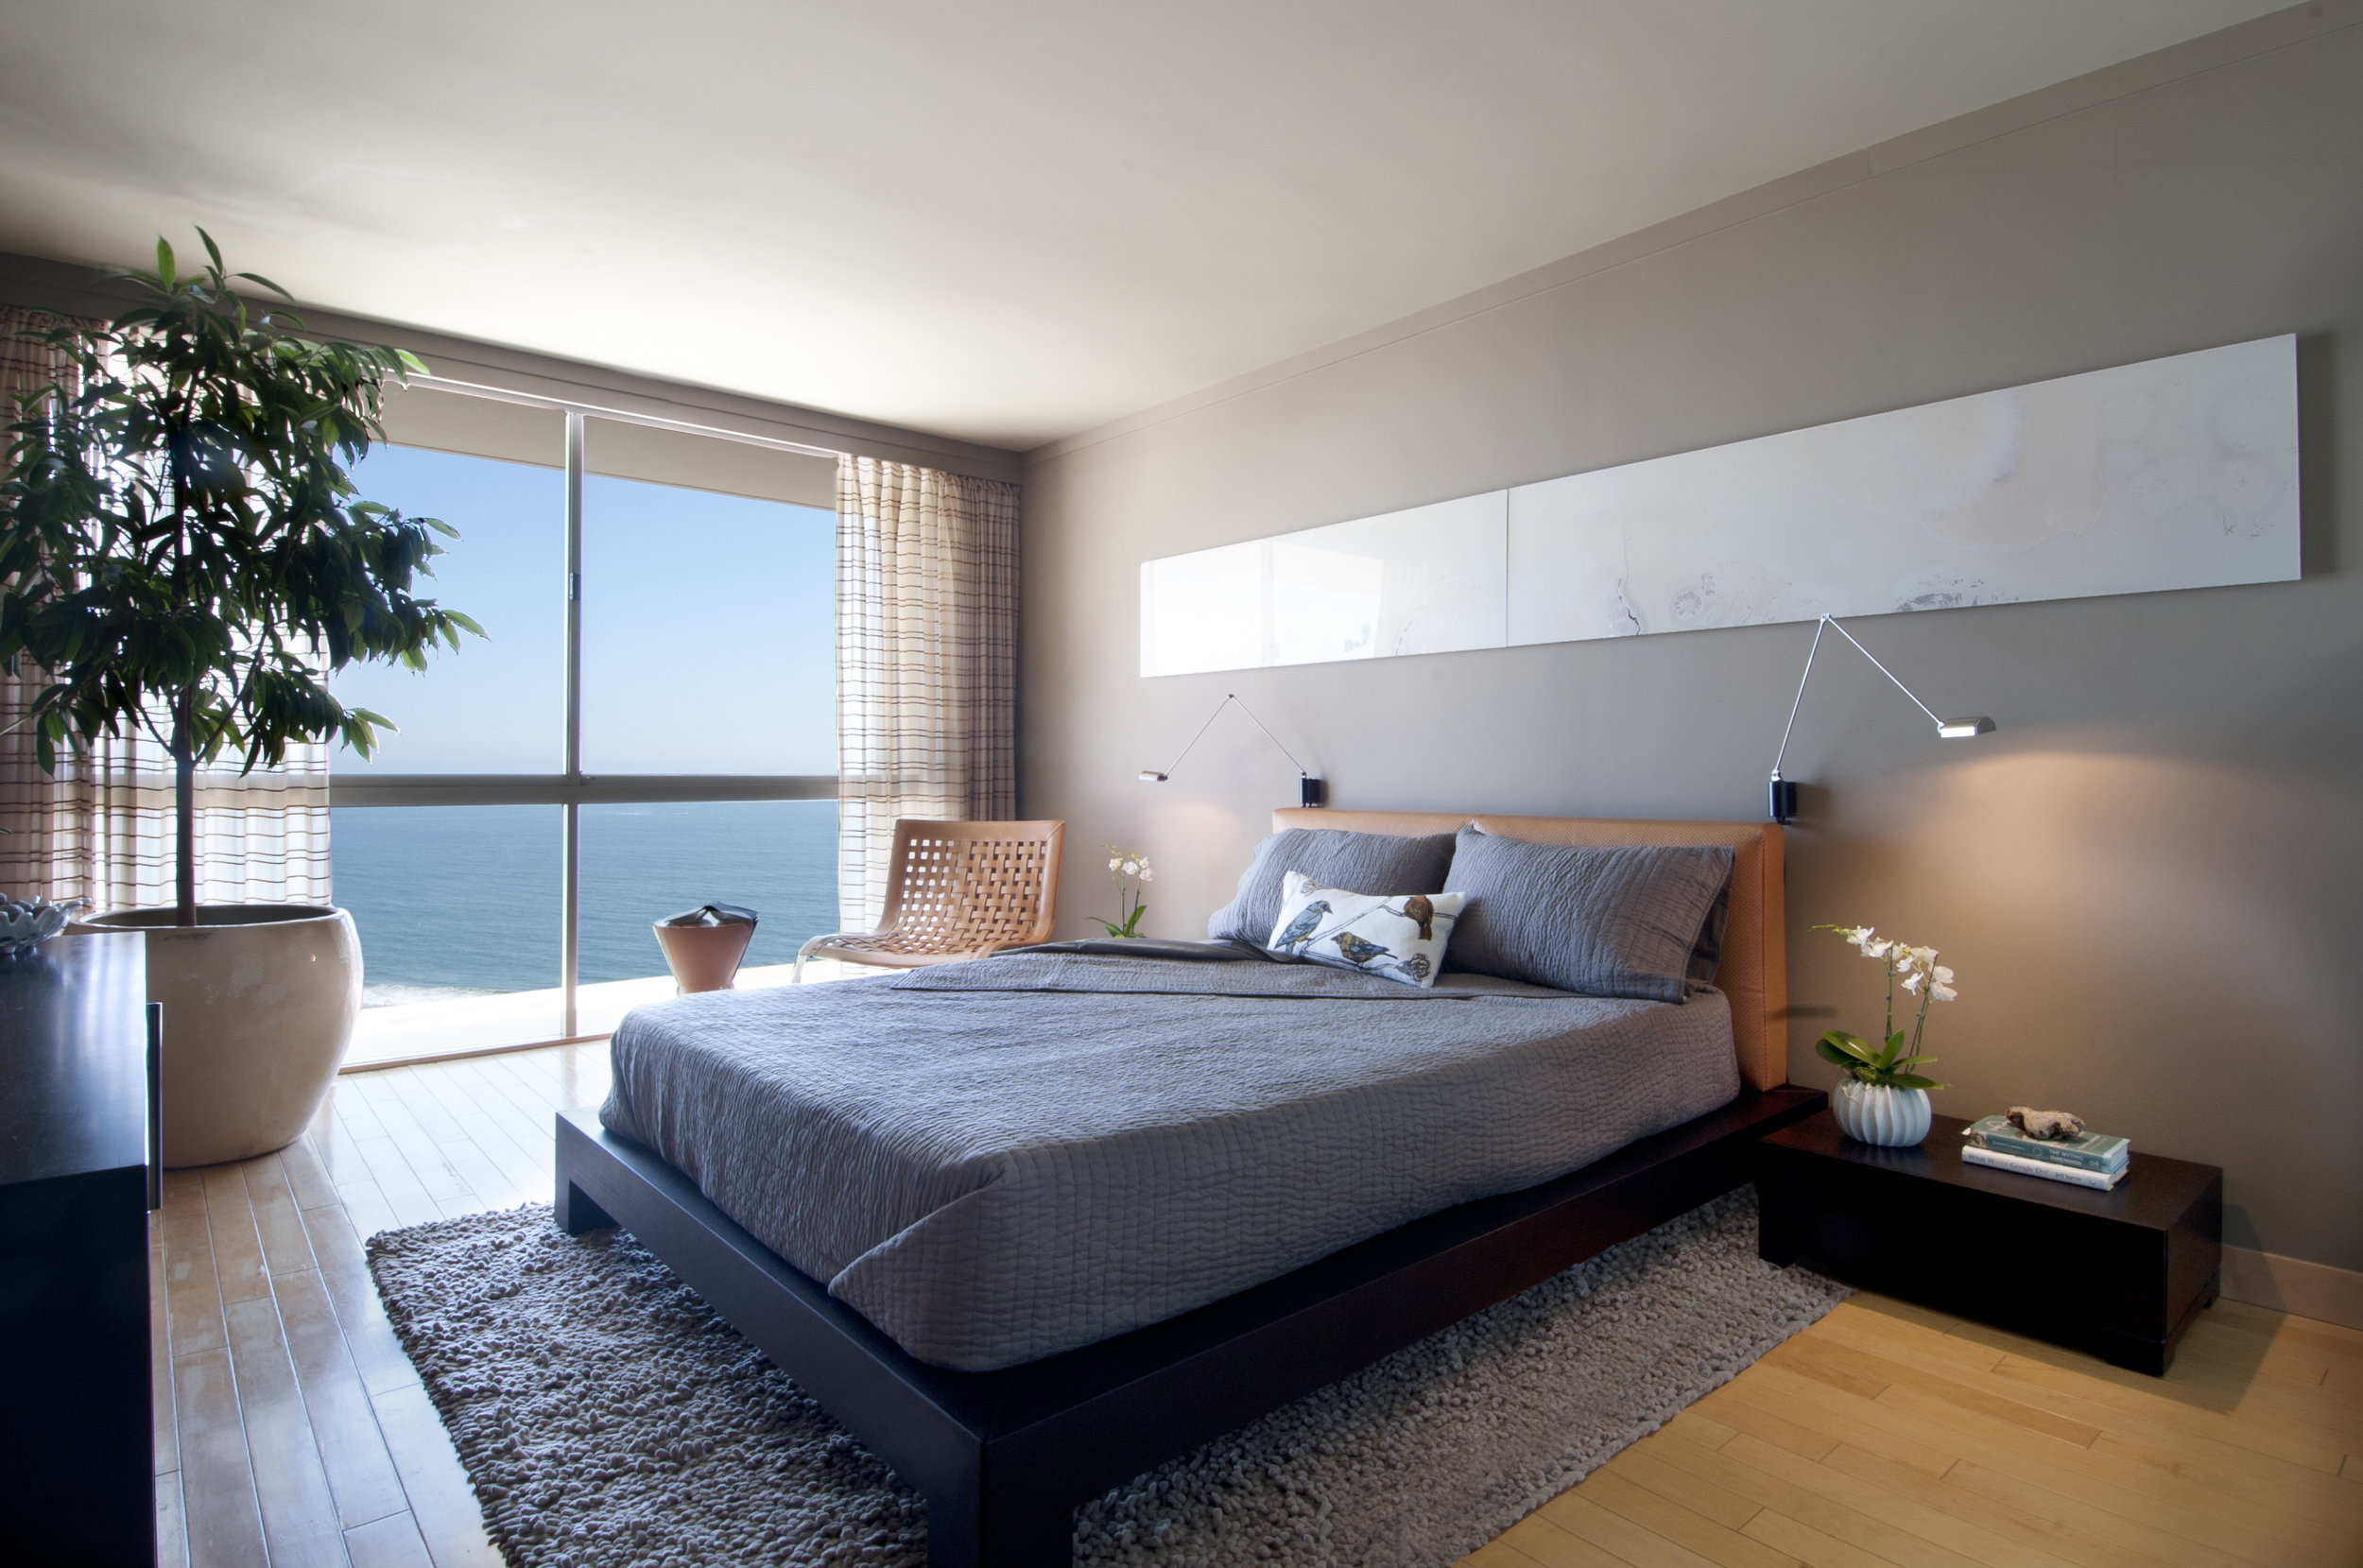 Sarah-barnard-design-modern-luxury-ocean-view-master-bedroom.jpg